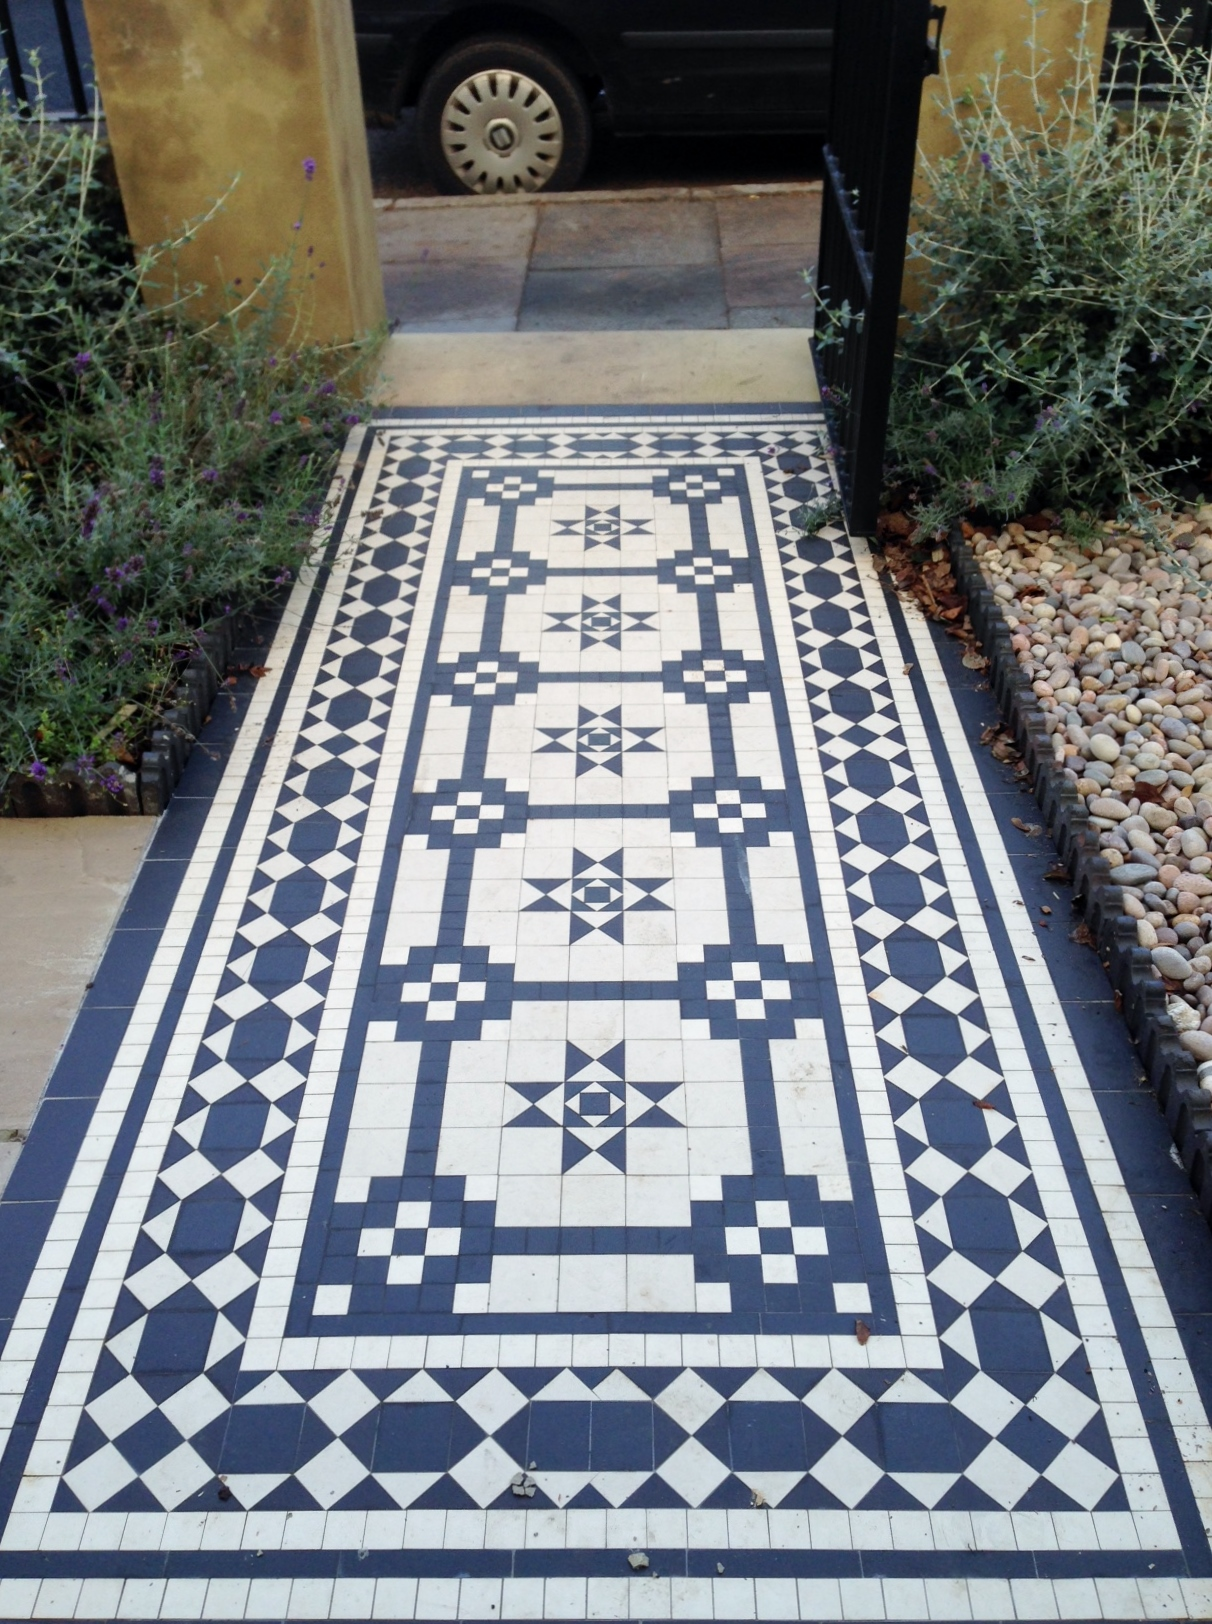 Islington Victorian mosaic tile path York stone sandstone paving wrought iron rails and gate London (22)